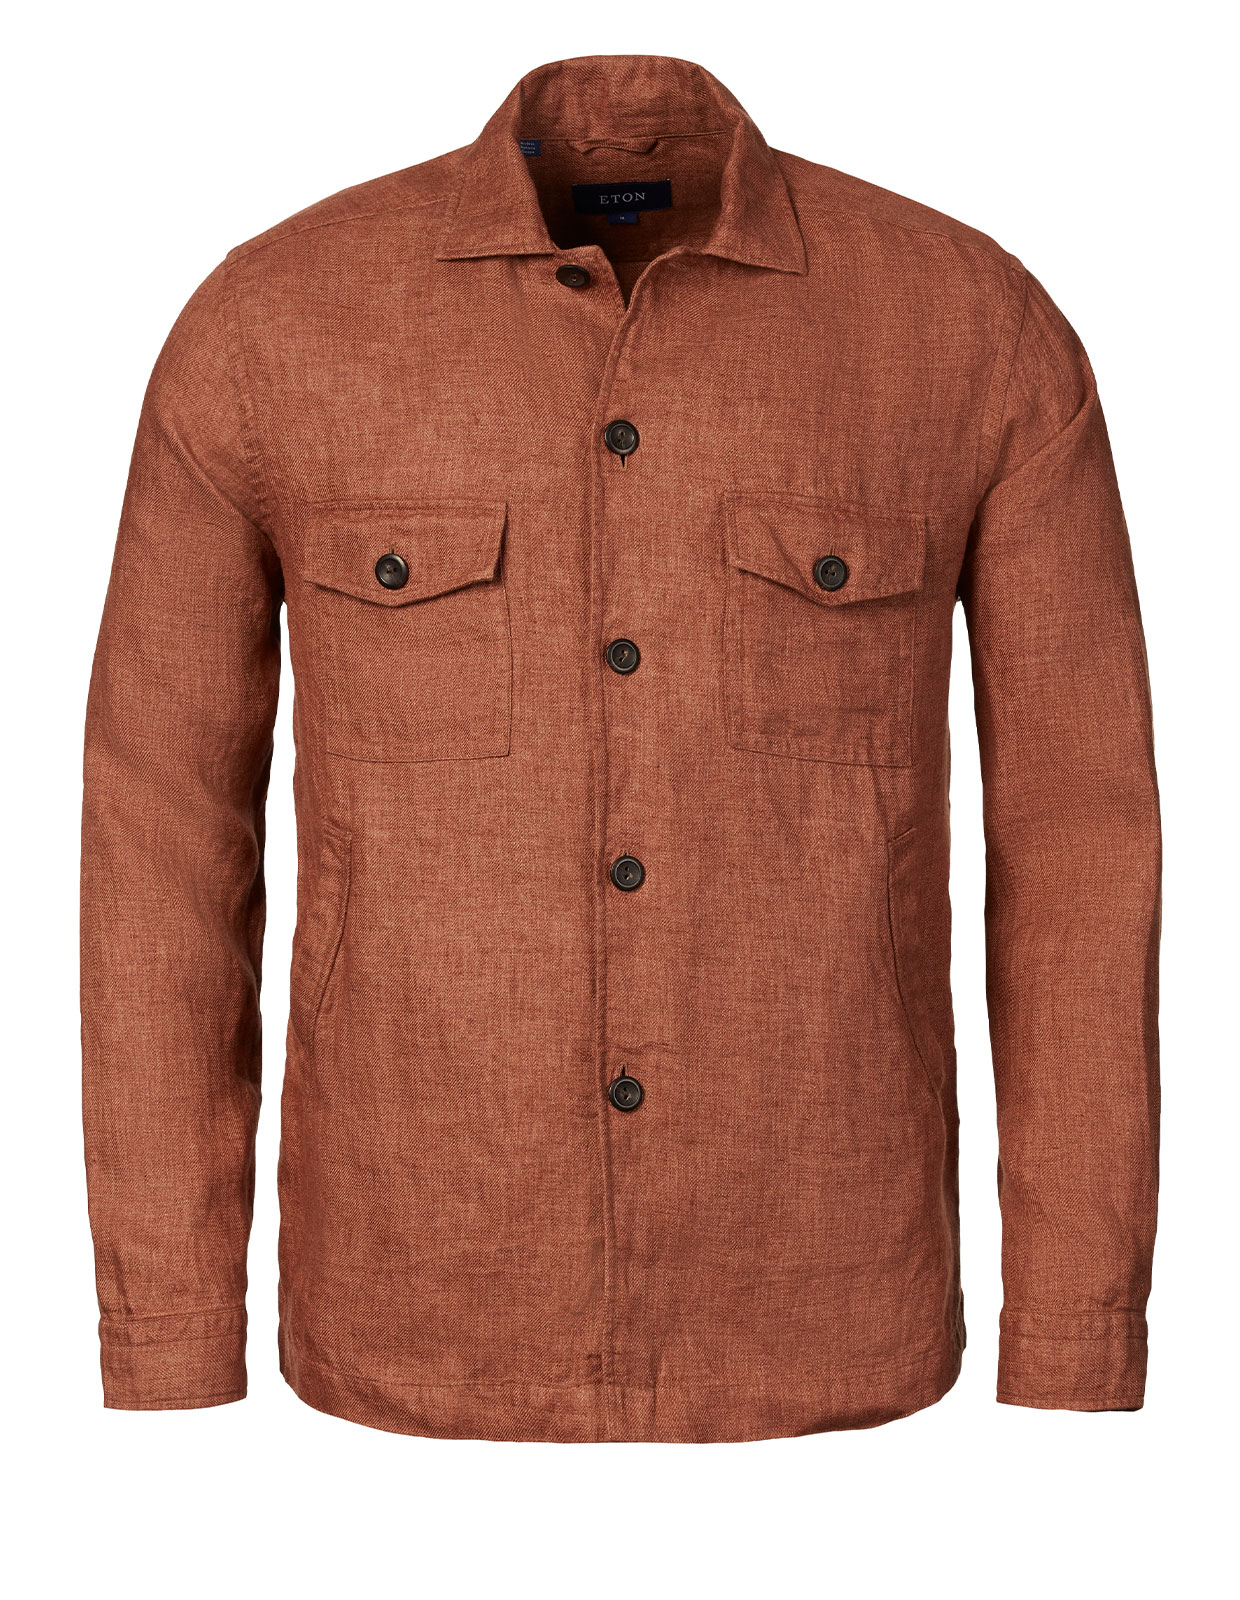 Overshirt Linen Brown